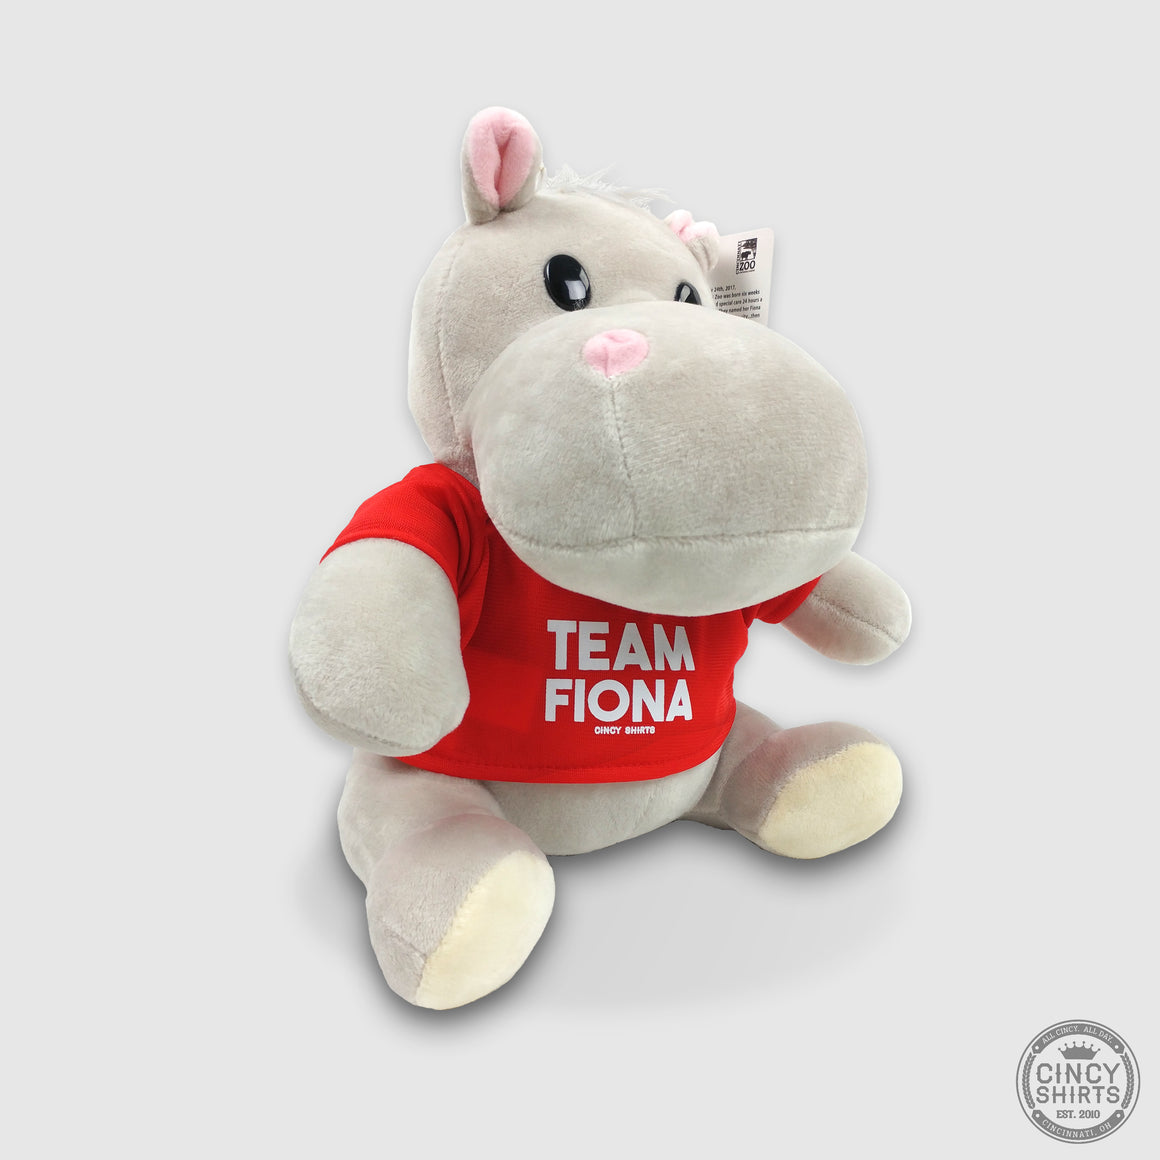 Team Fiona Plush - Cincy Shirts